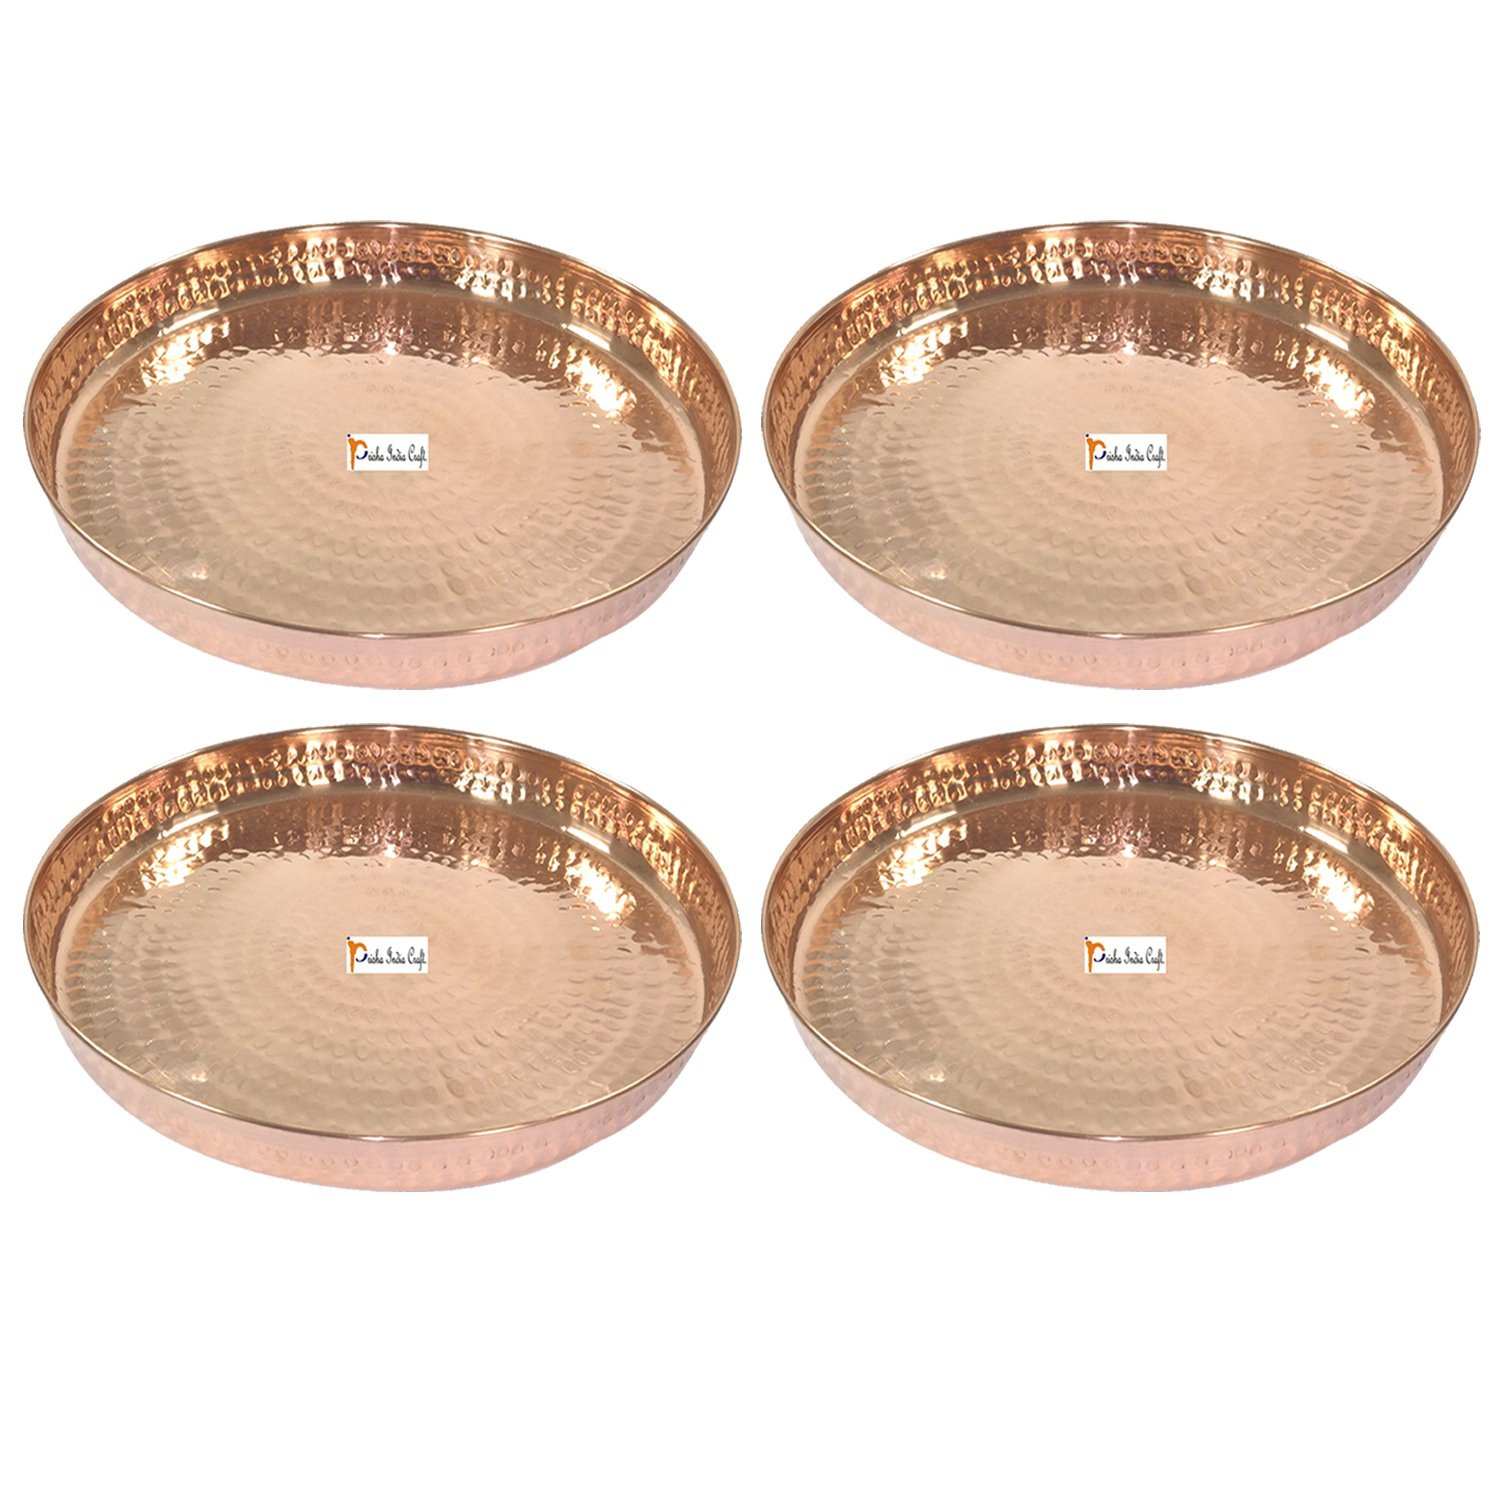 Set of 4 -Prisha India Craft 100% Pure Copper Dinner Plate - DIAMETER 12 INCH- Traditional Kitchen Special Thali Plate Home Decorative Restaurant Ware Hotel - CHRISTMAS GIFTS